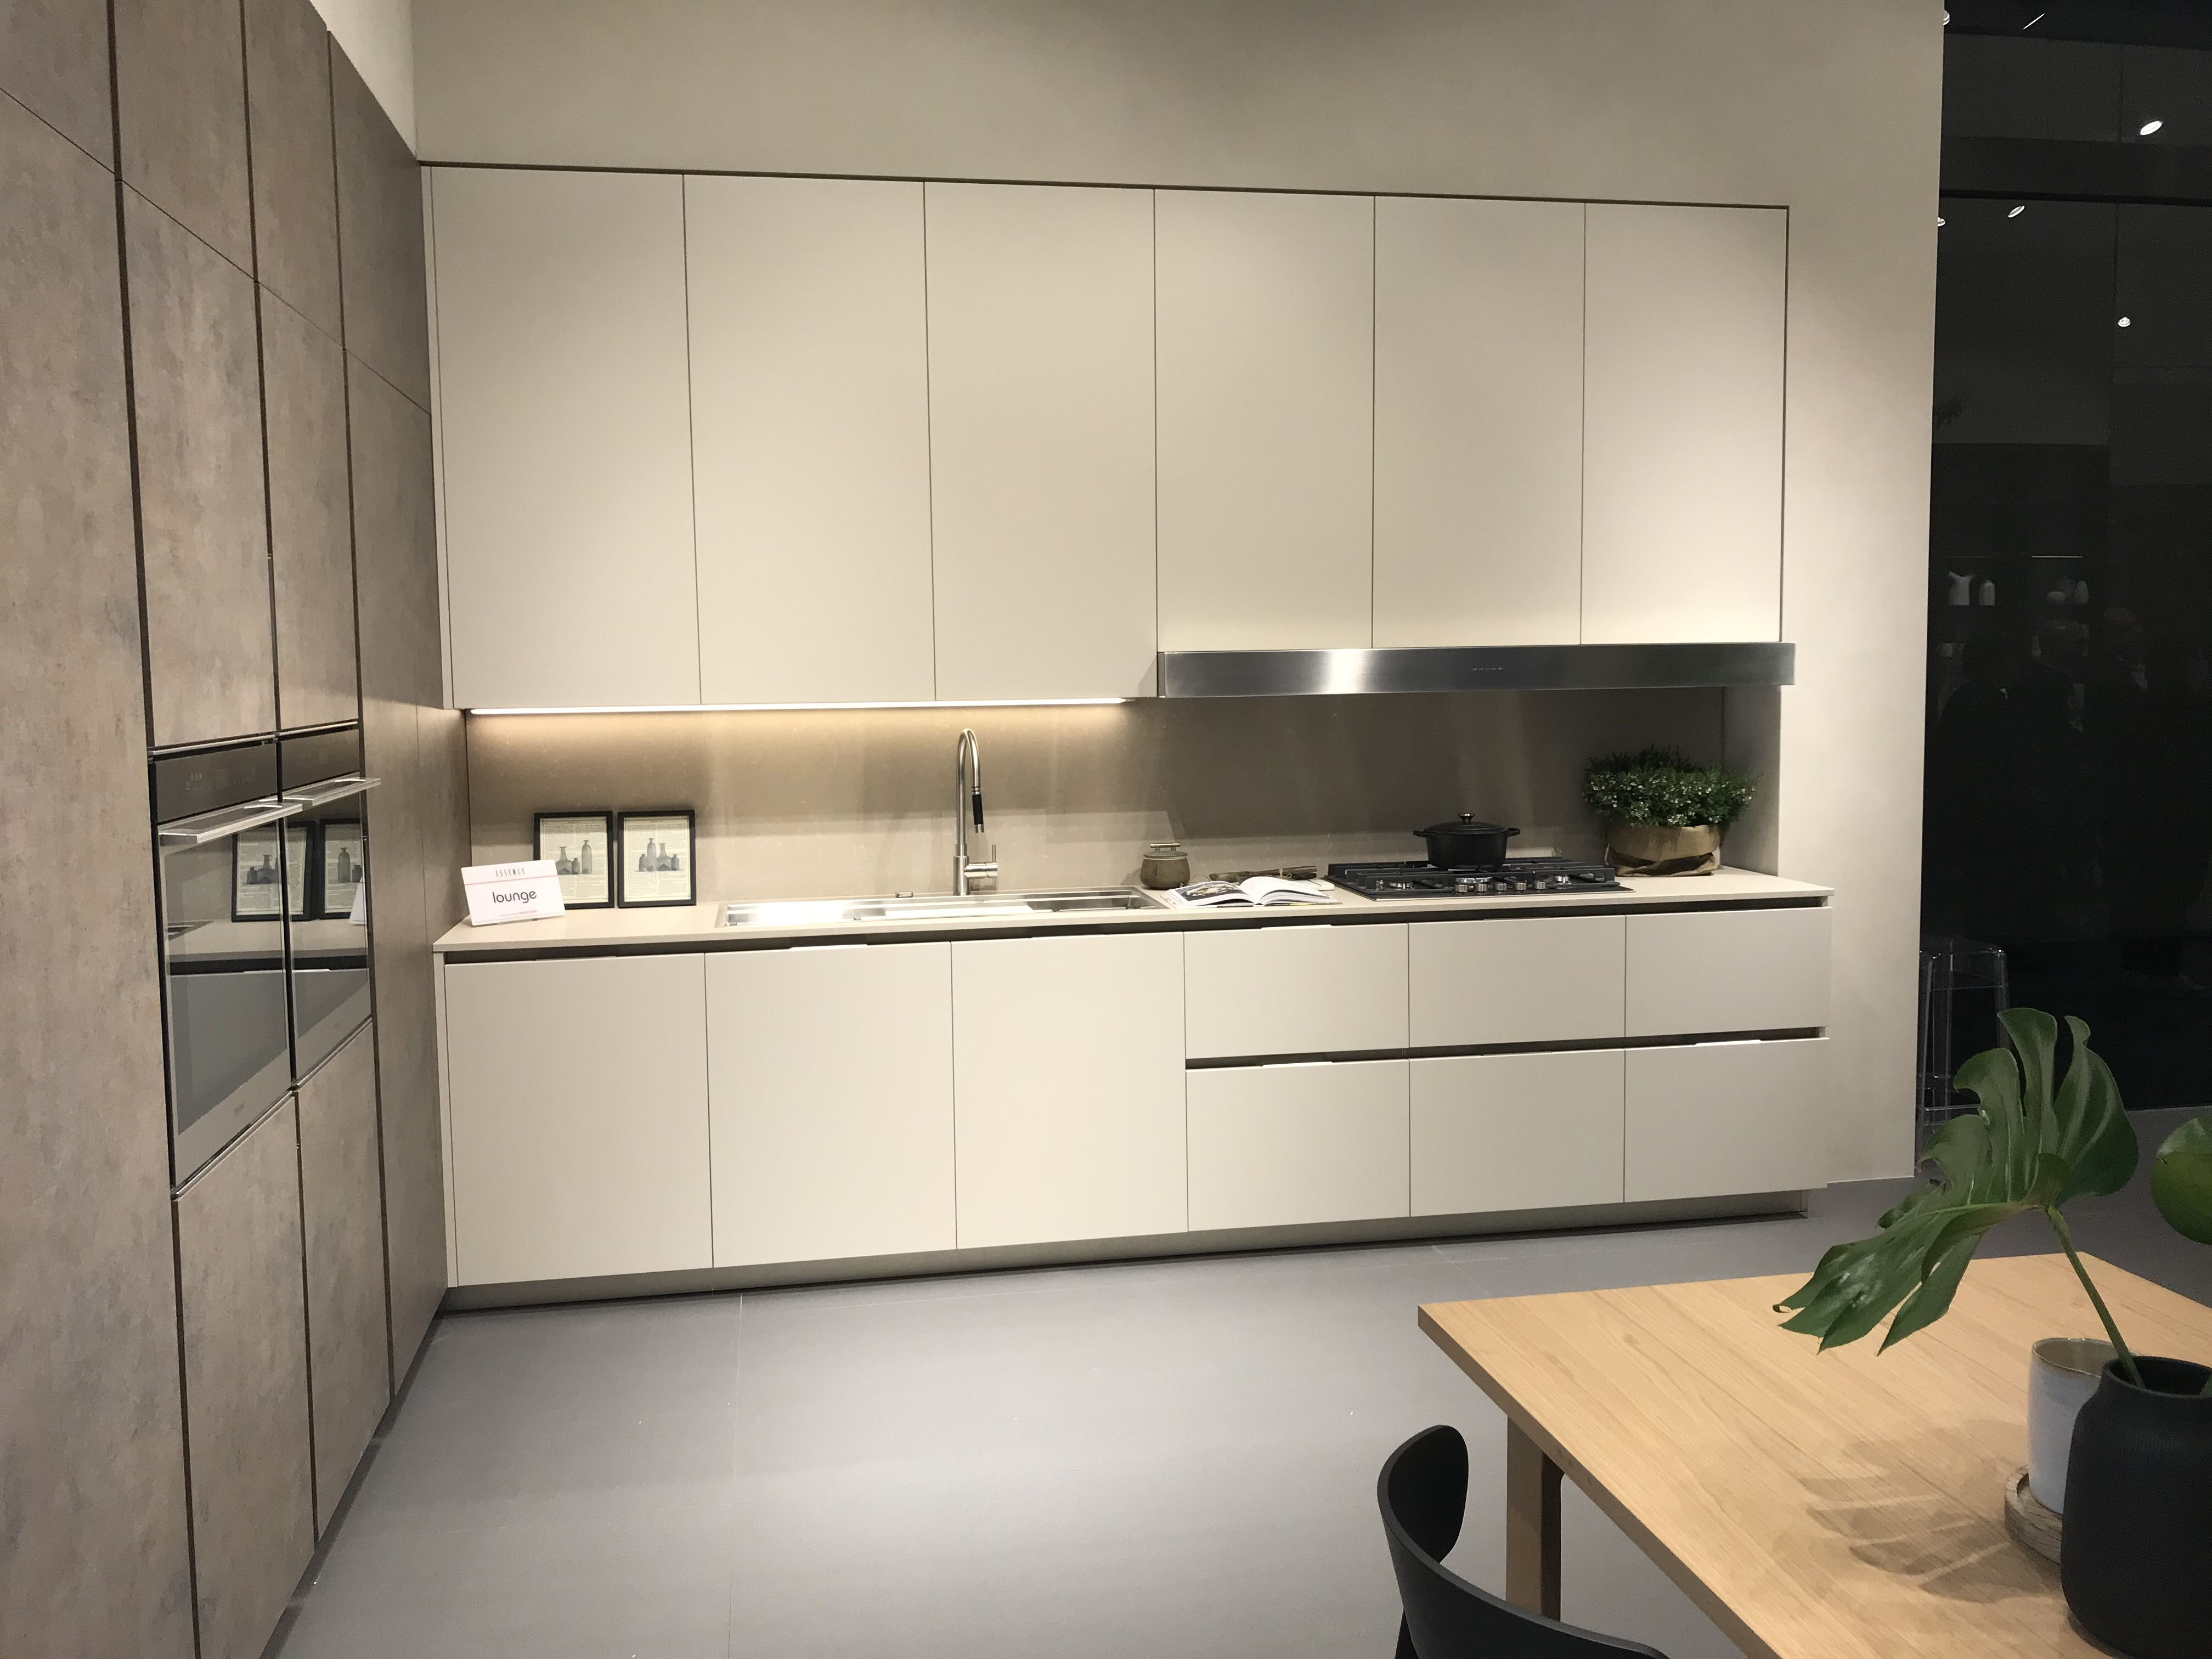 Veneta Cucine Grigio Corda.Pin By Yurij Belov On Cvt Kitchen Kitchen Cabinets Decor